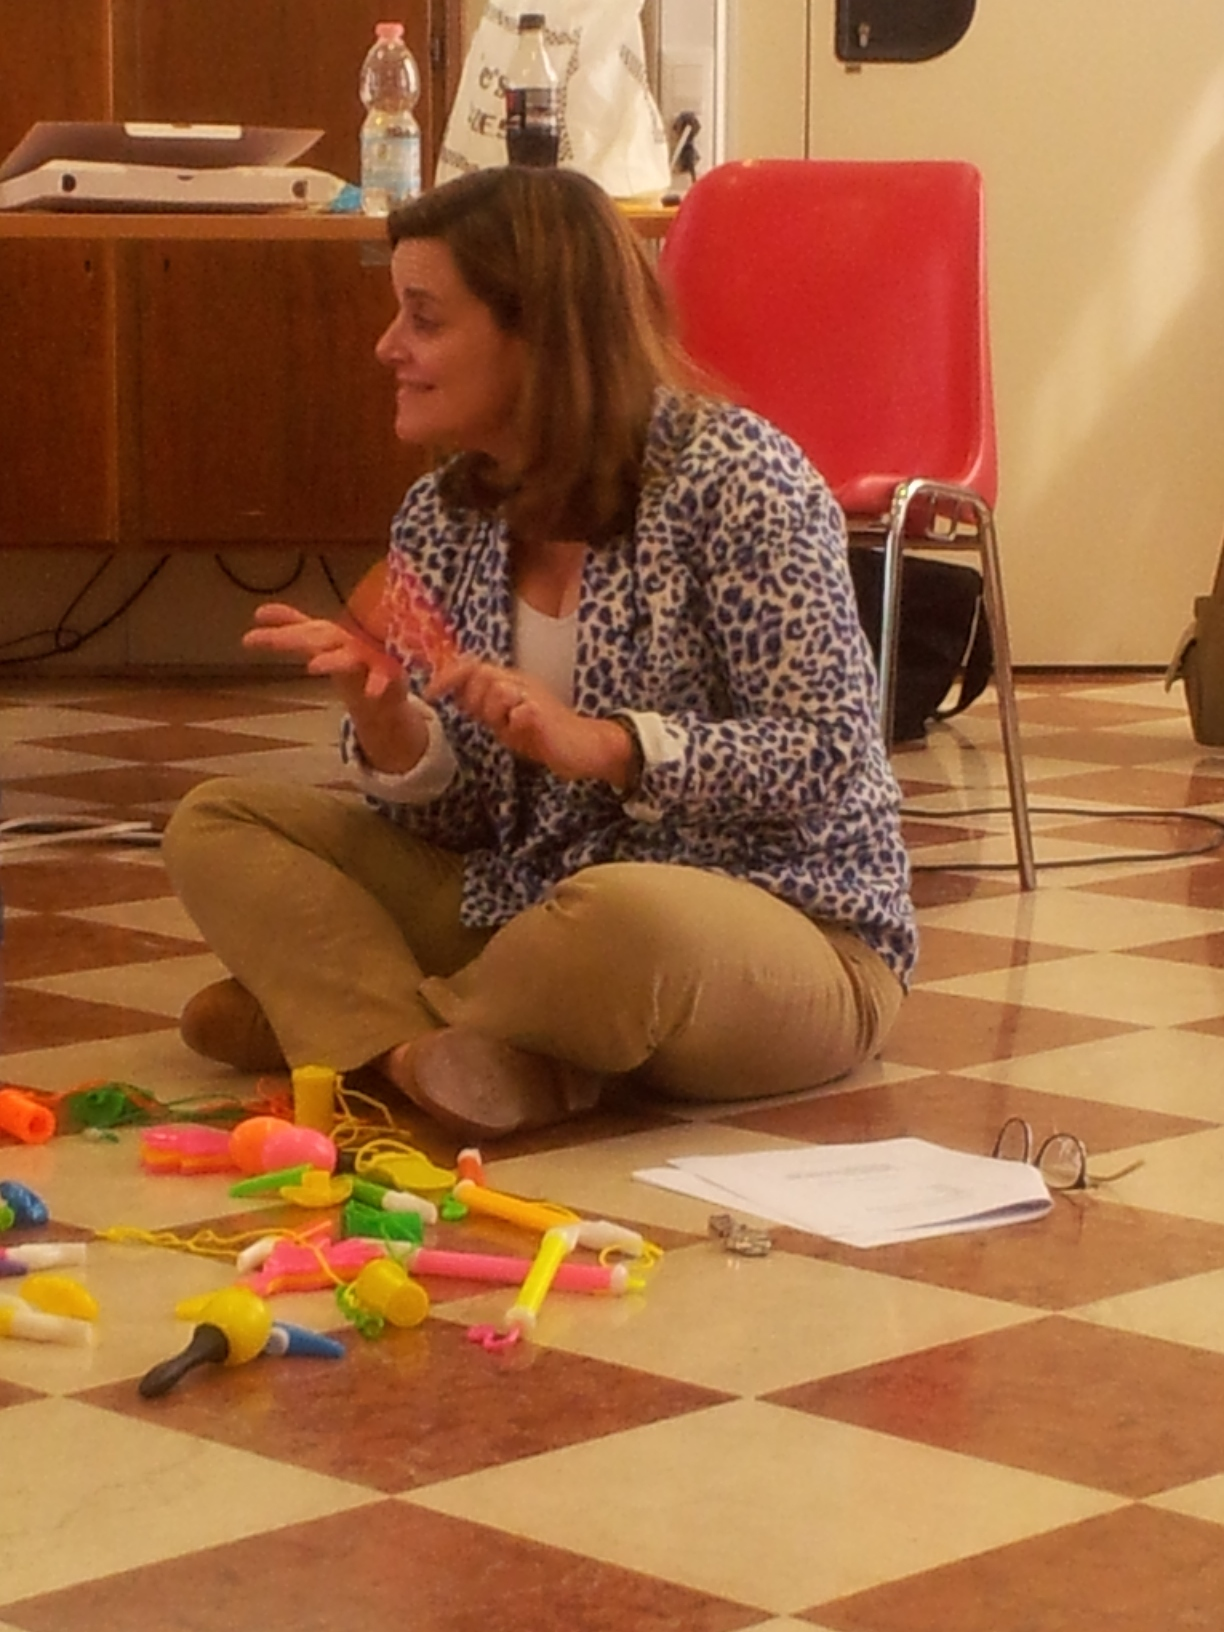 gestalt play therapy venezia 13 14 training karen hillmann fried giandomenico bagatin psicologia psicoterapia bambini 3